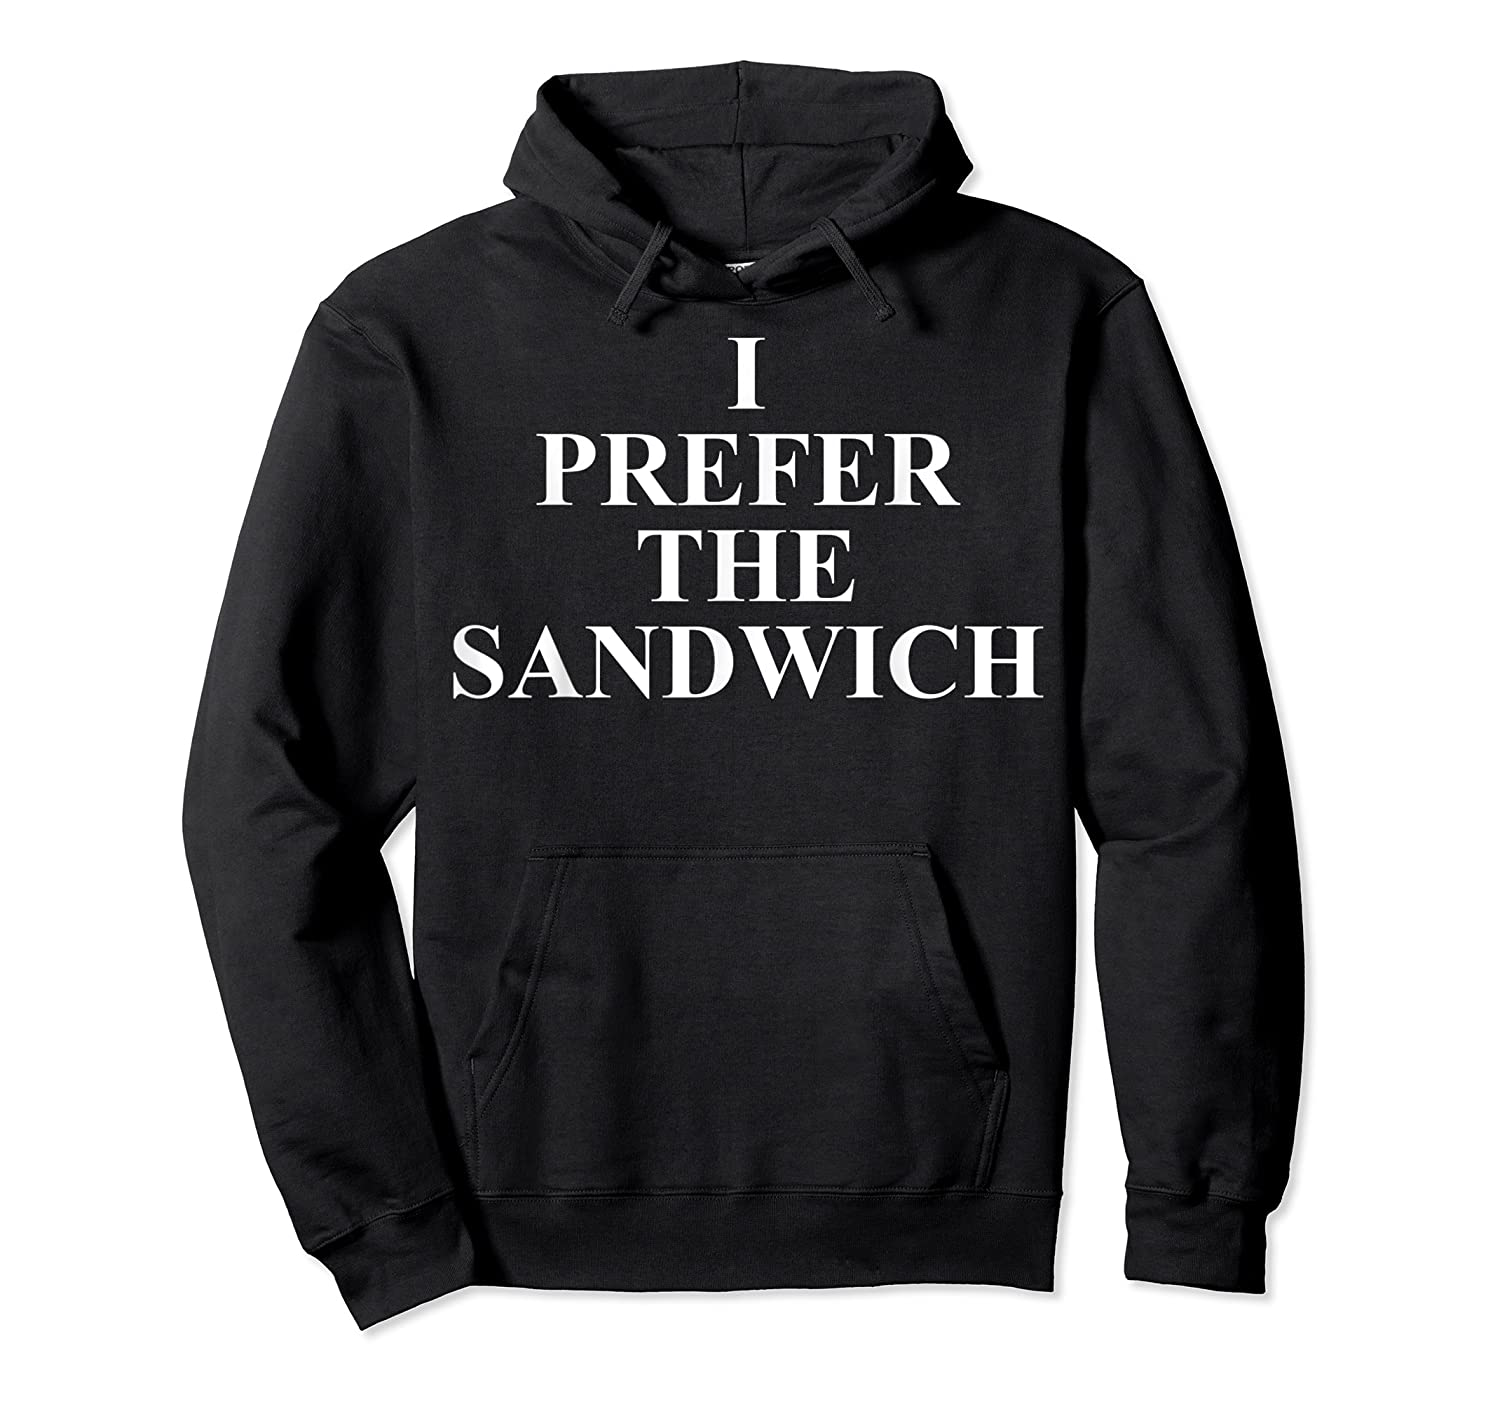 Sandwich T Shirt Funny Gifts For Sandwich Lovers Top Tees Unisex Pullover Hoodie